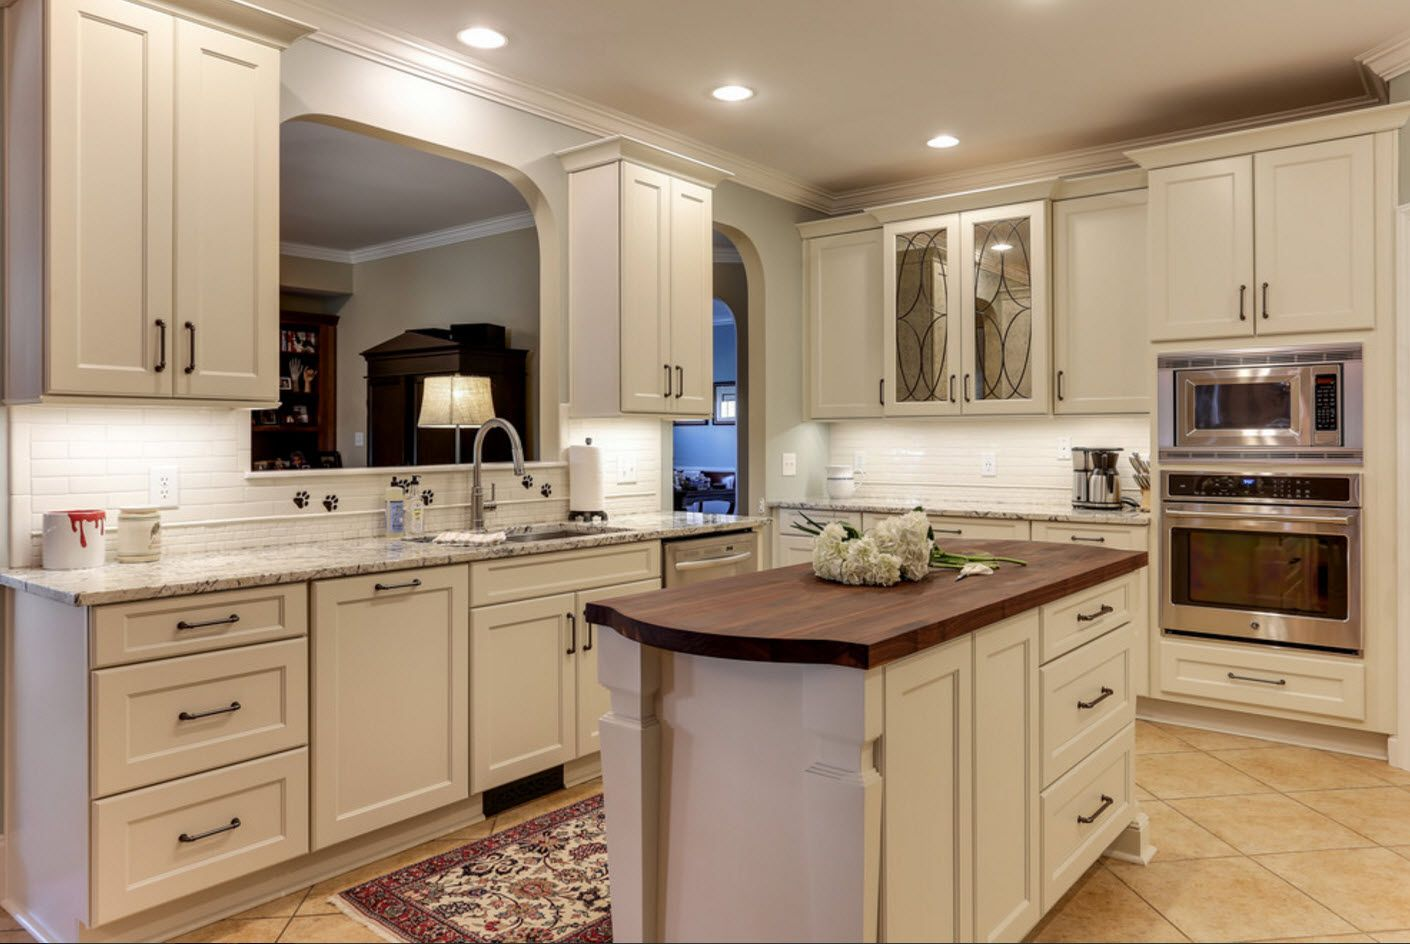 French classic style in the kitchen with wooden kitchen furniture and island